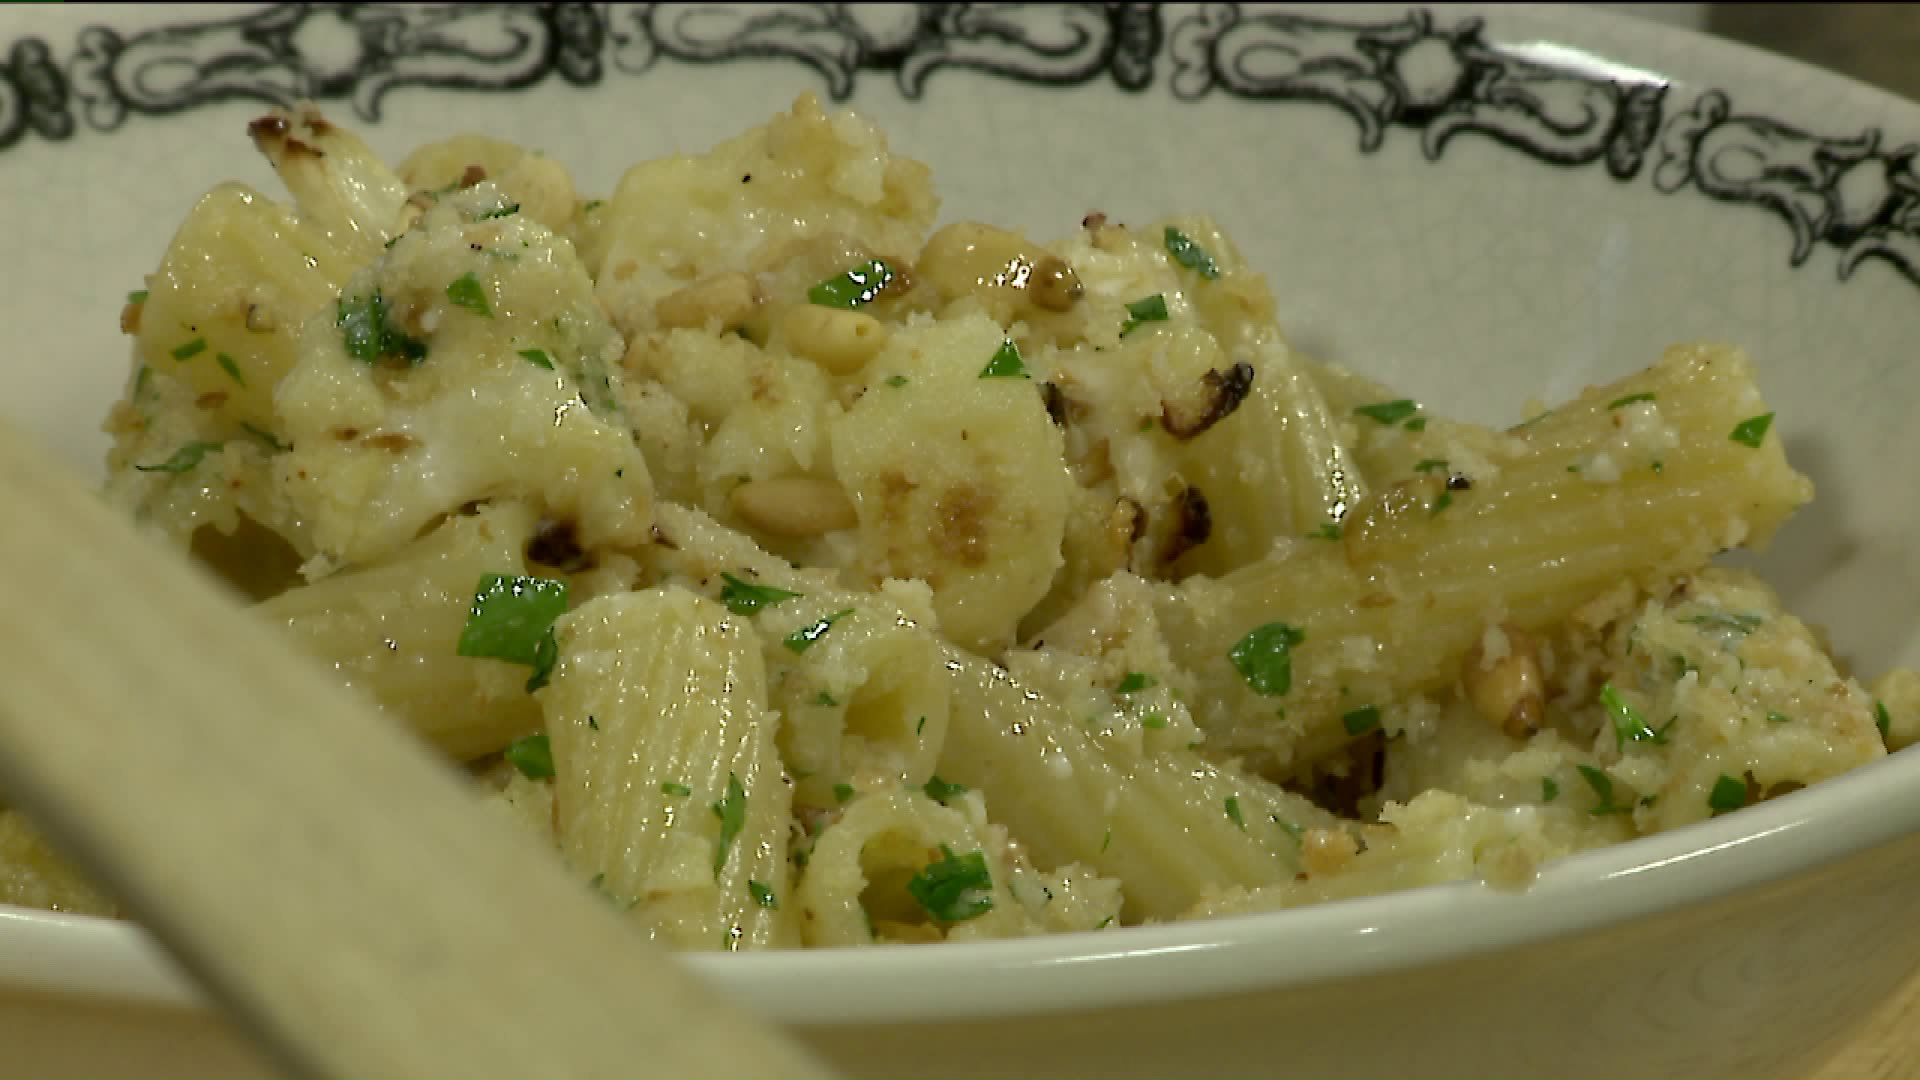 David S Pasta With Cauliflower And Pine Nuts Fox 8 Cleveland Wjw